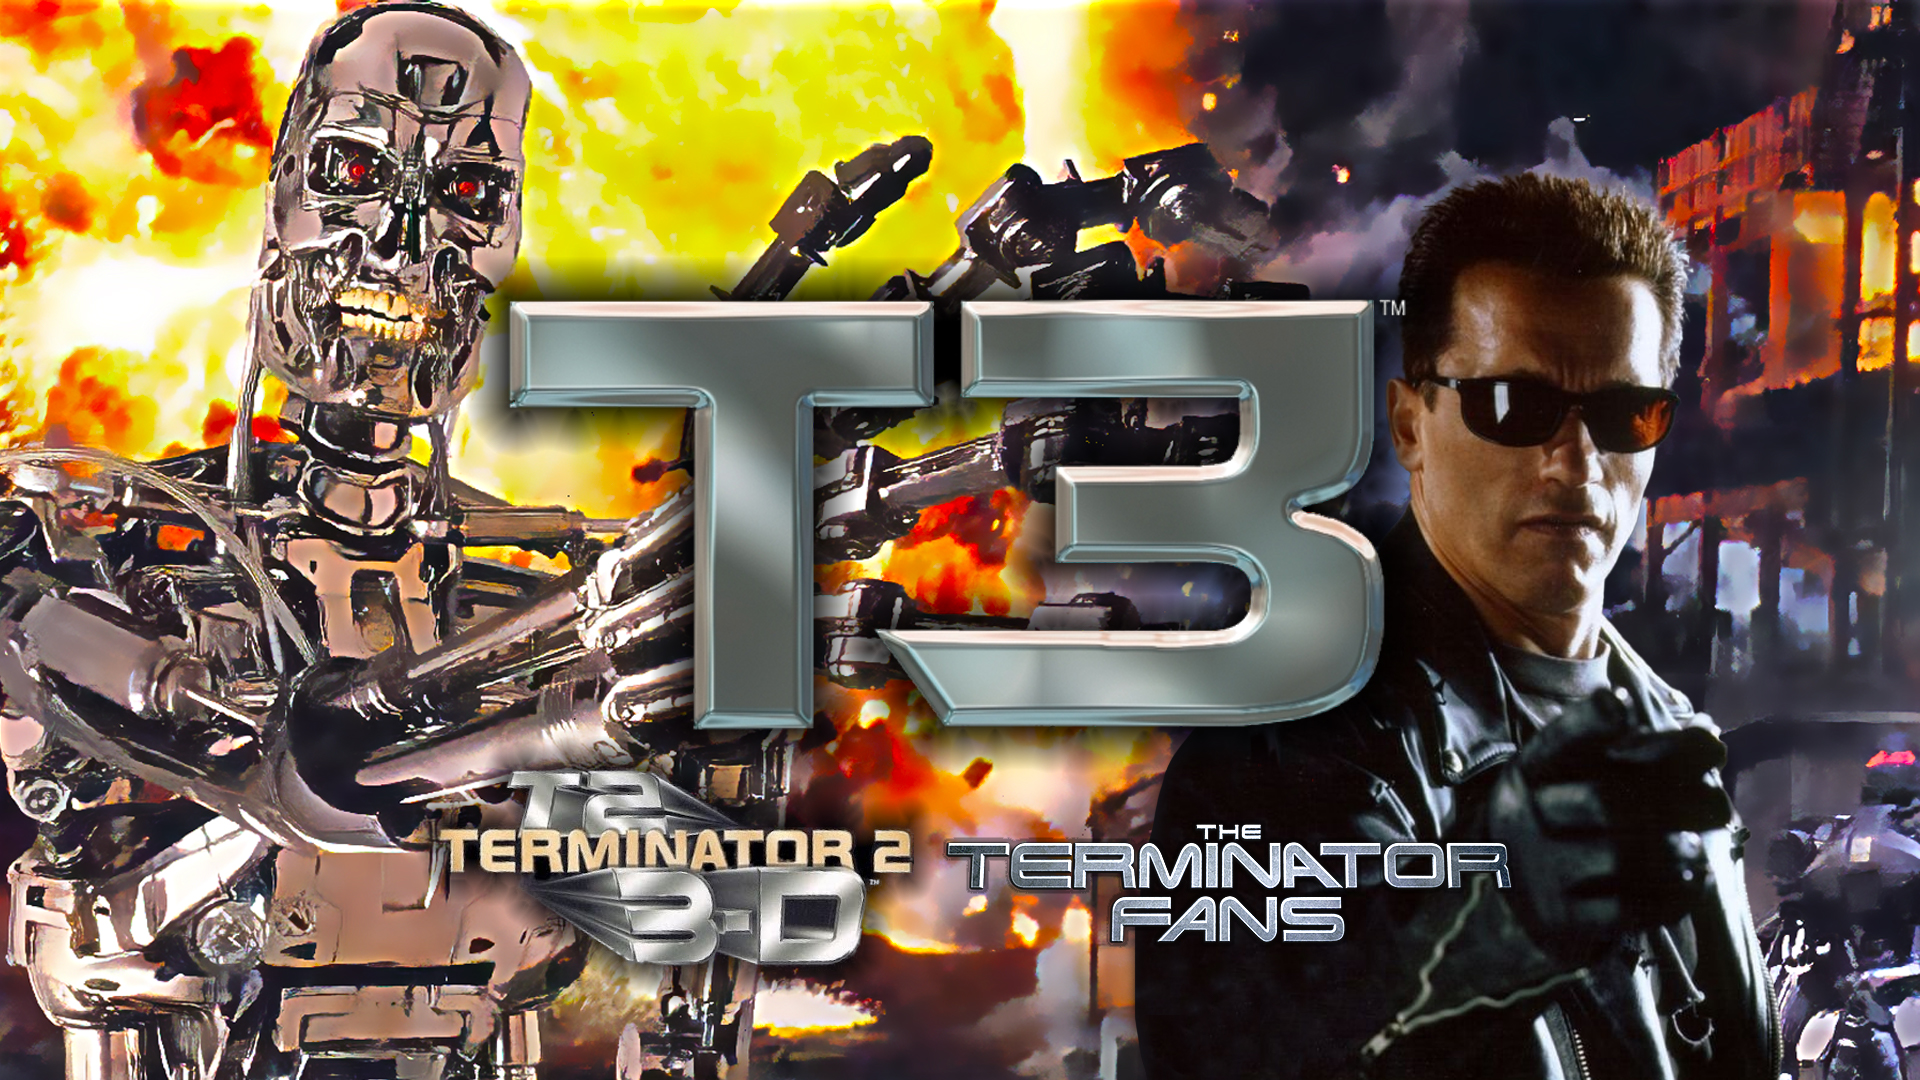 Is T2 3-D: Battle Across Time The Real Terminator 3?